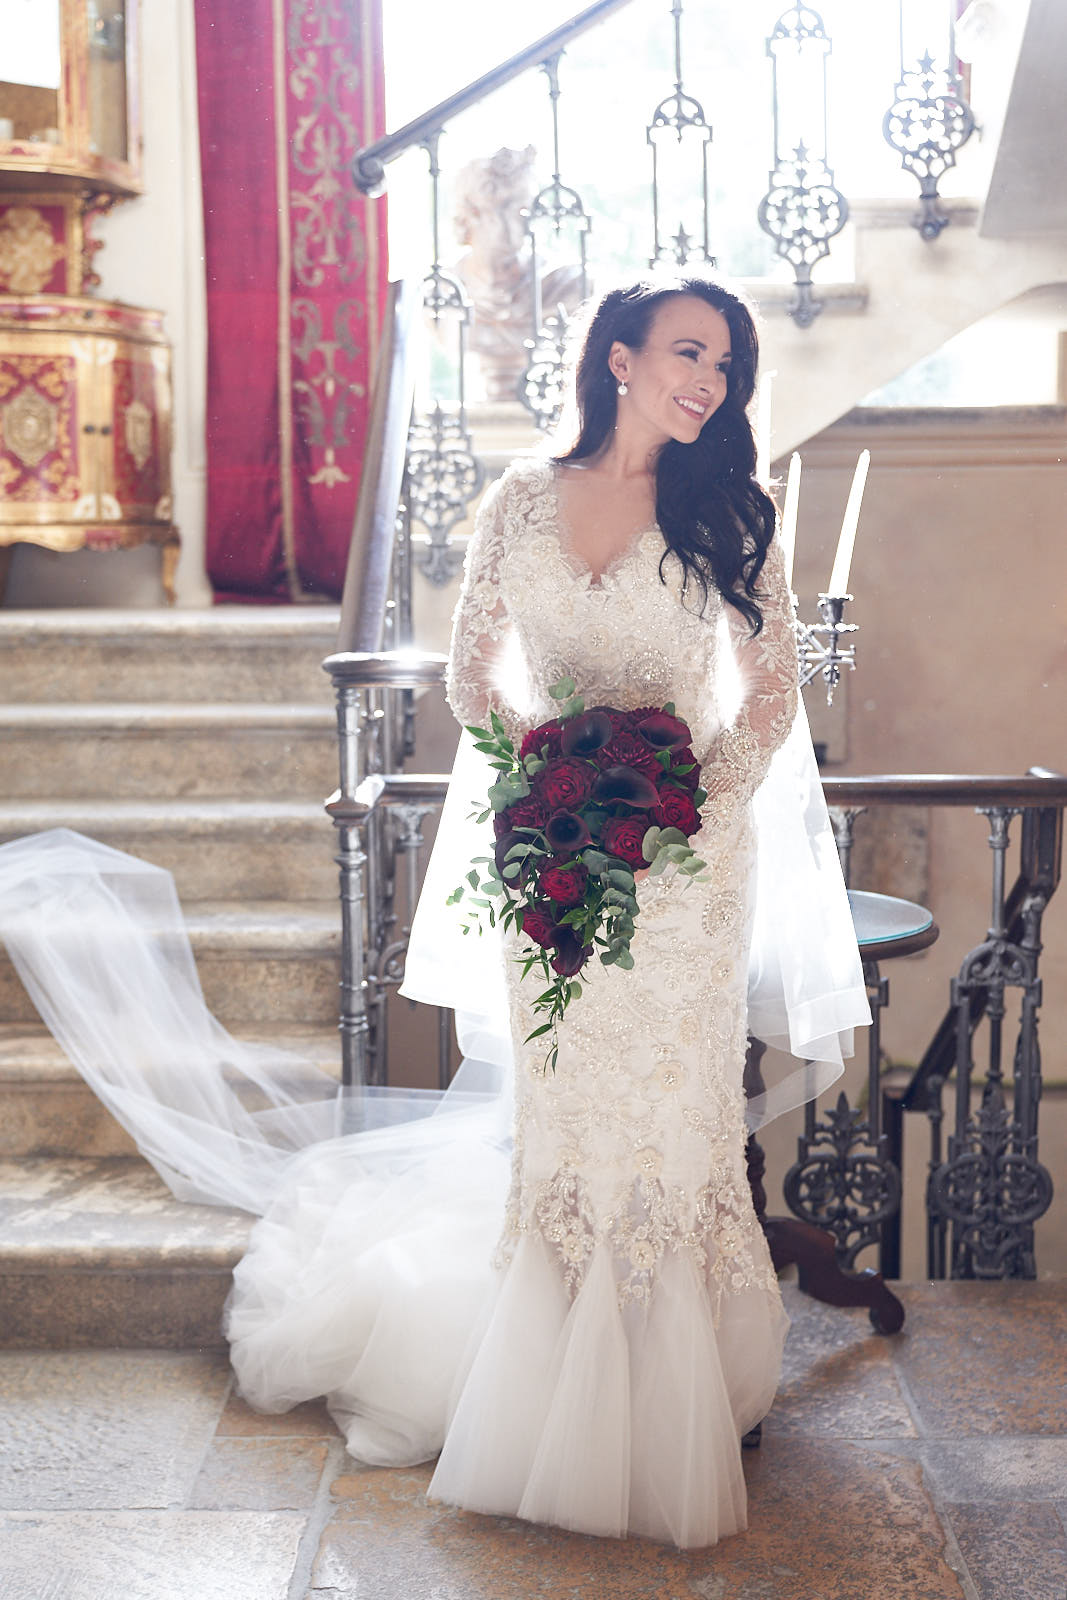 Borgo Santo Pietro Wedding Tuscany. Marchesa Wedding Gown